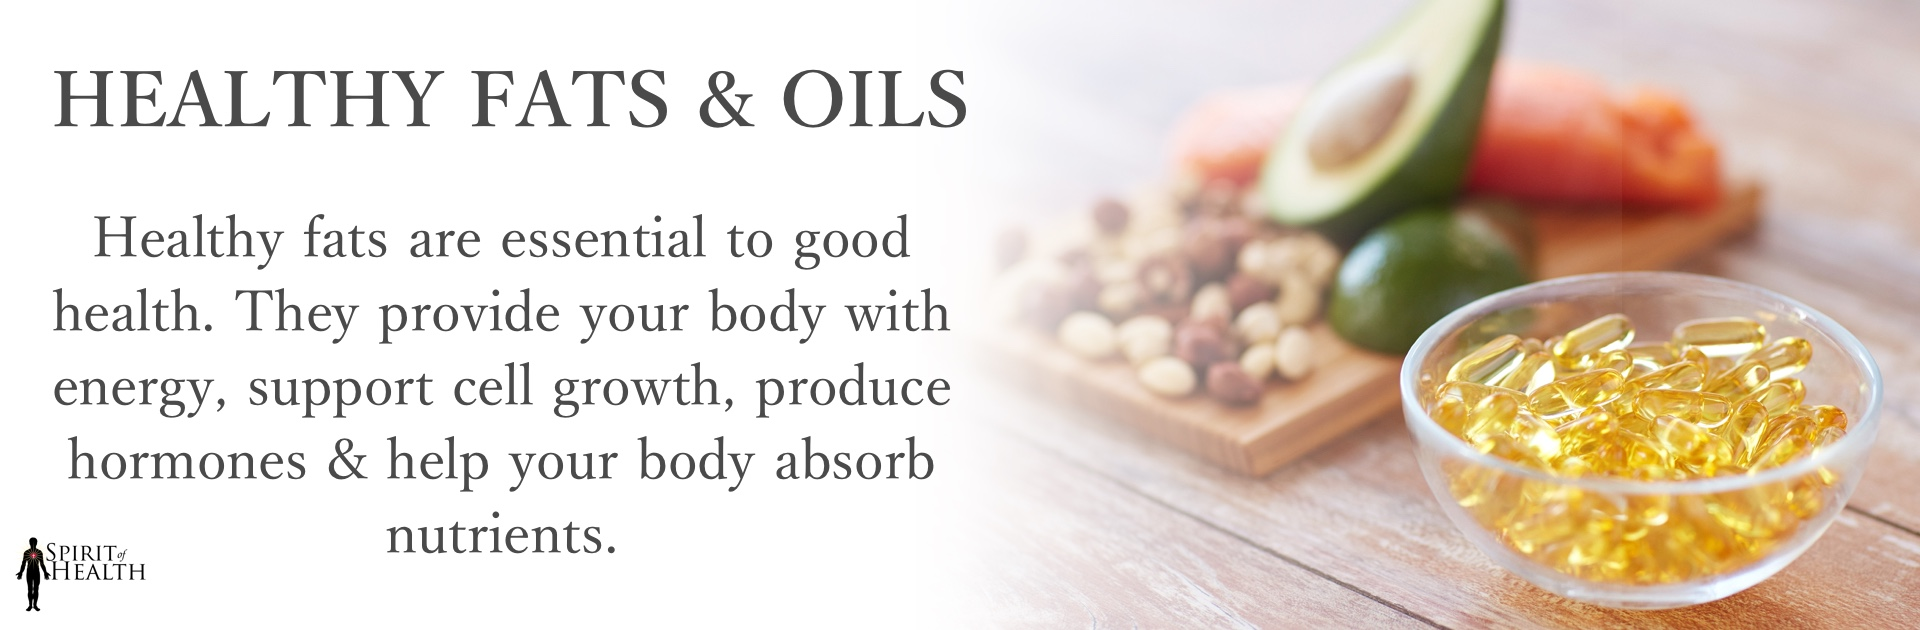 soh-store-banner-healthy-fats-oils2.jpg